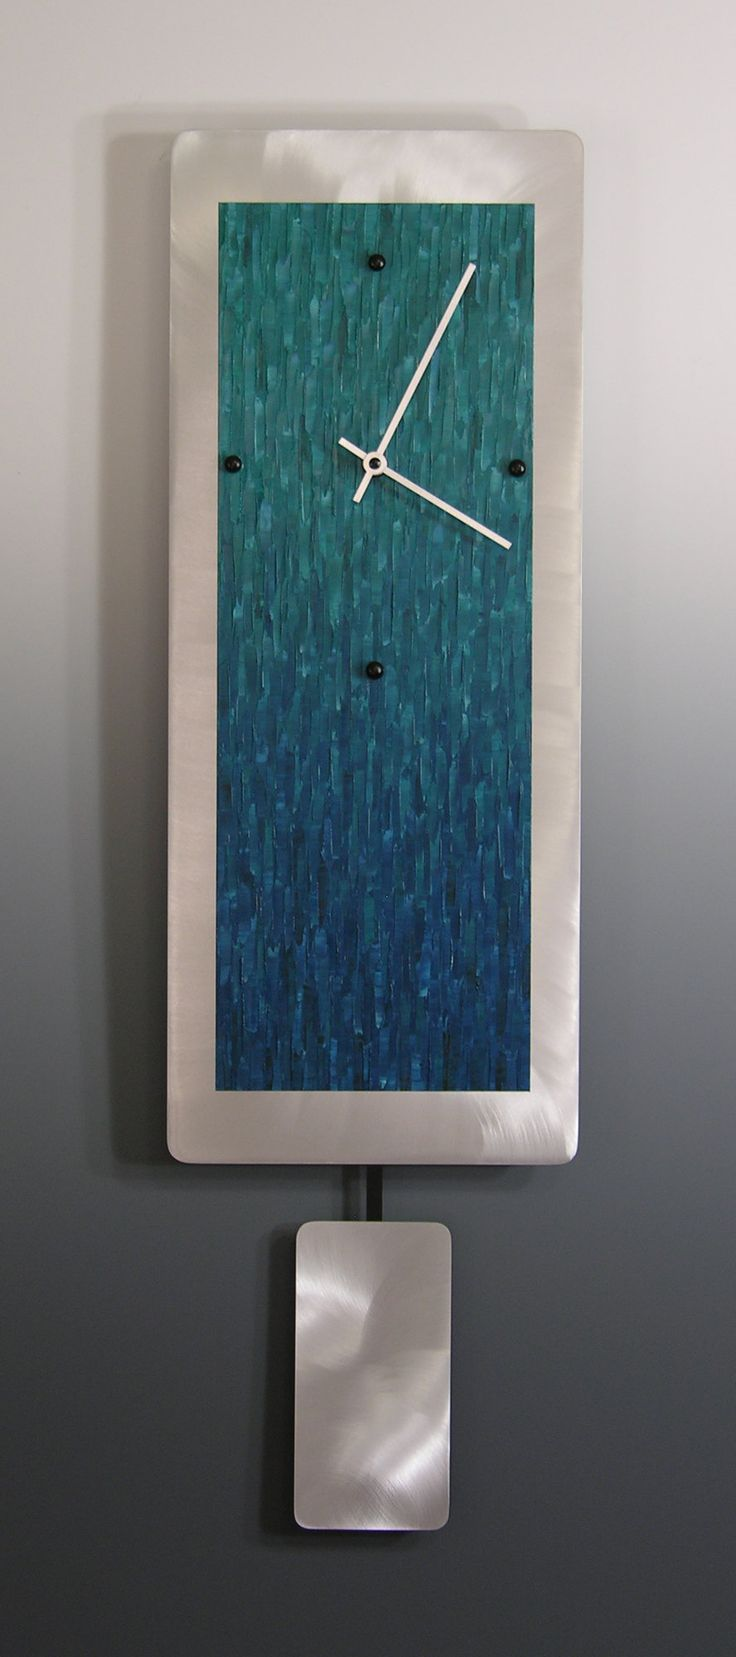 The 25 best teal clocks ideas on pinterest fabric design teal ocean blend on aluminum with pendulum by linda lamore painted metal clock amipublicfo Image collections